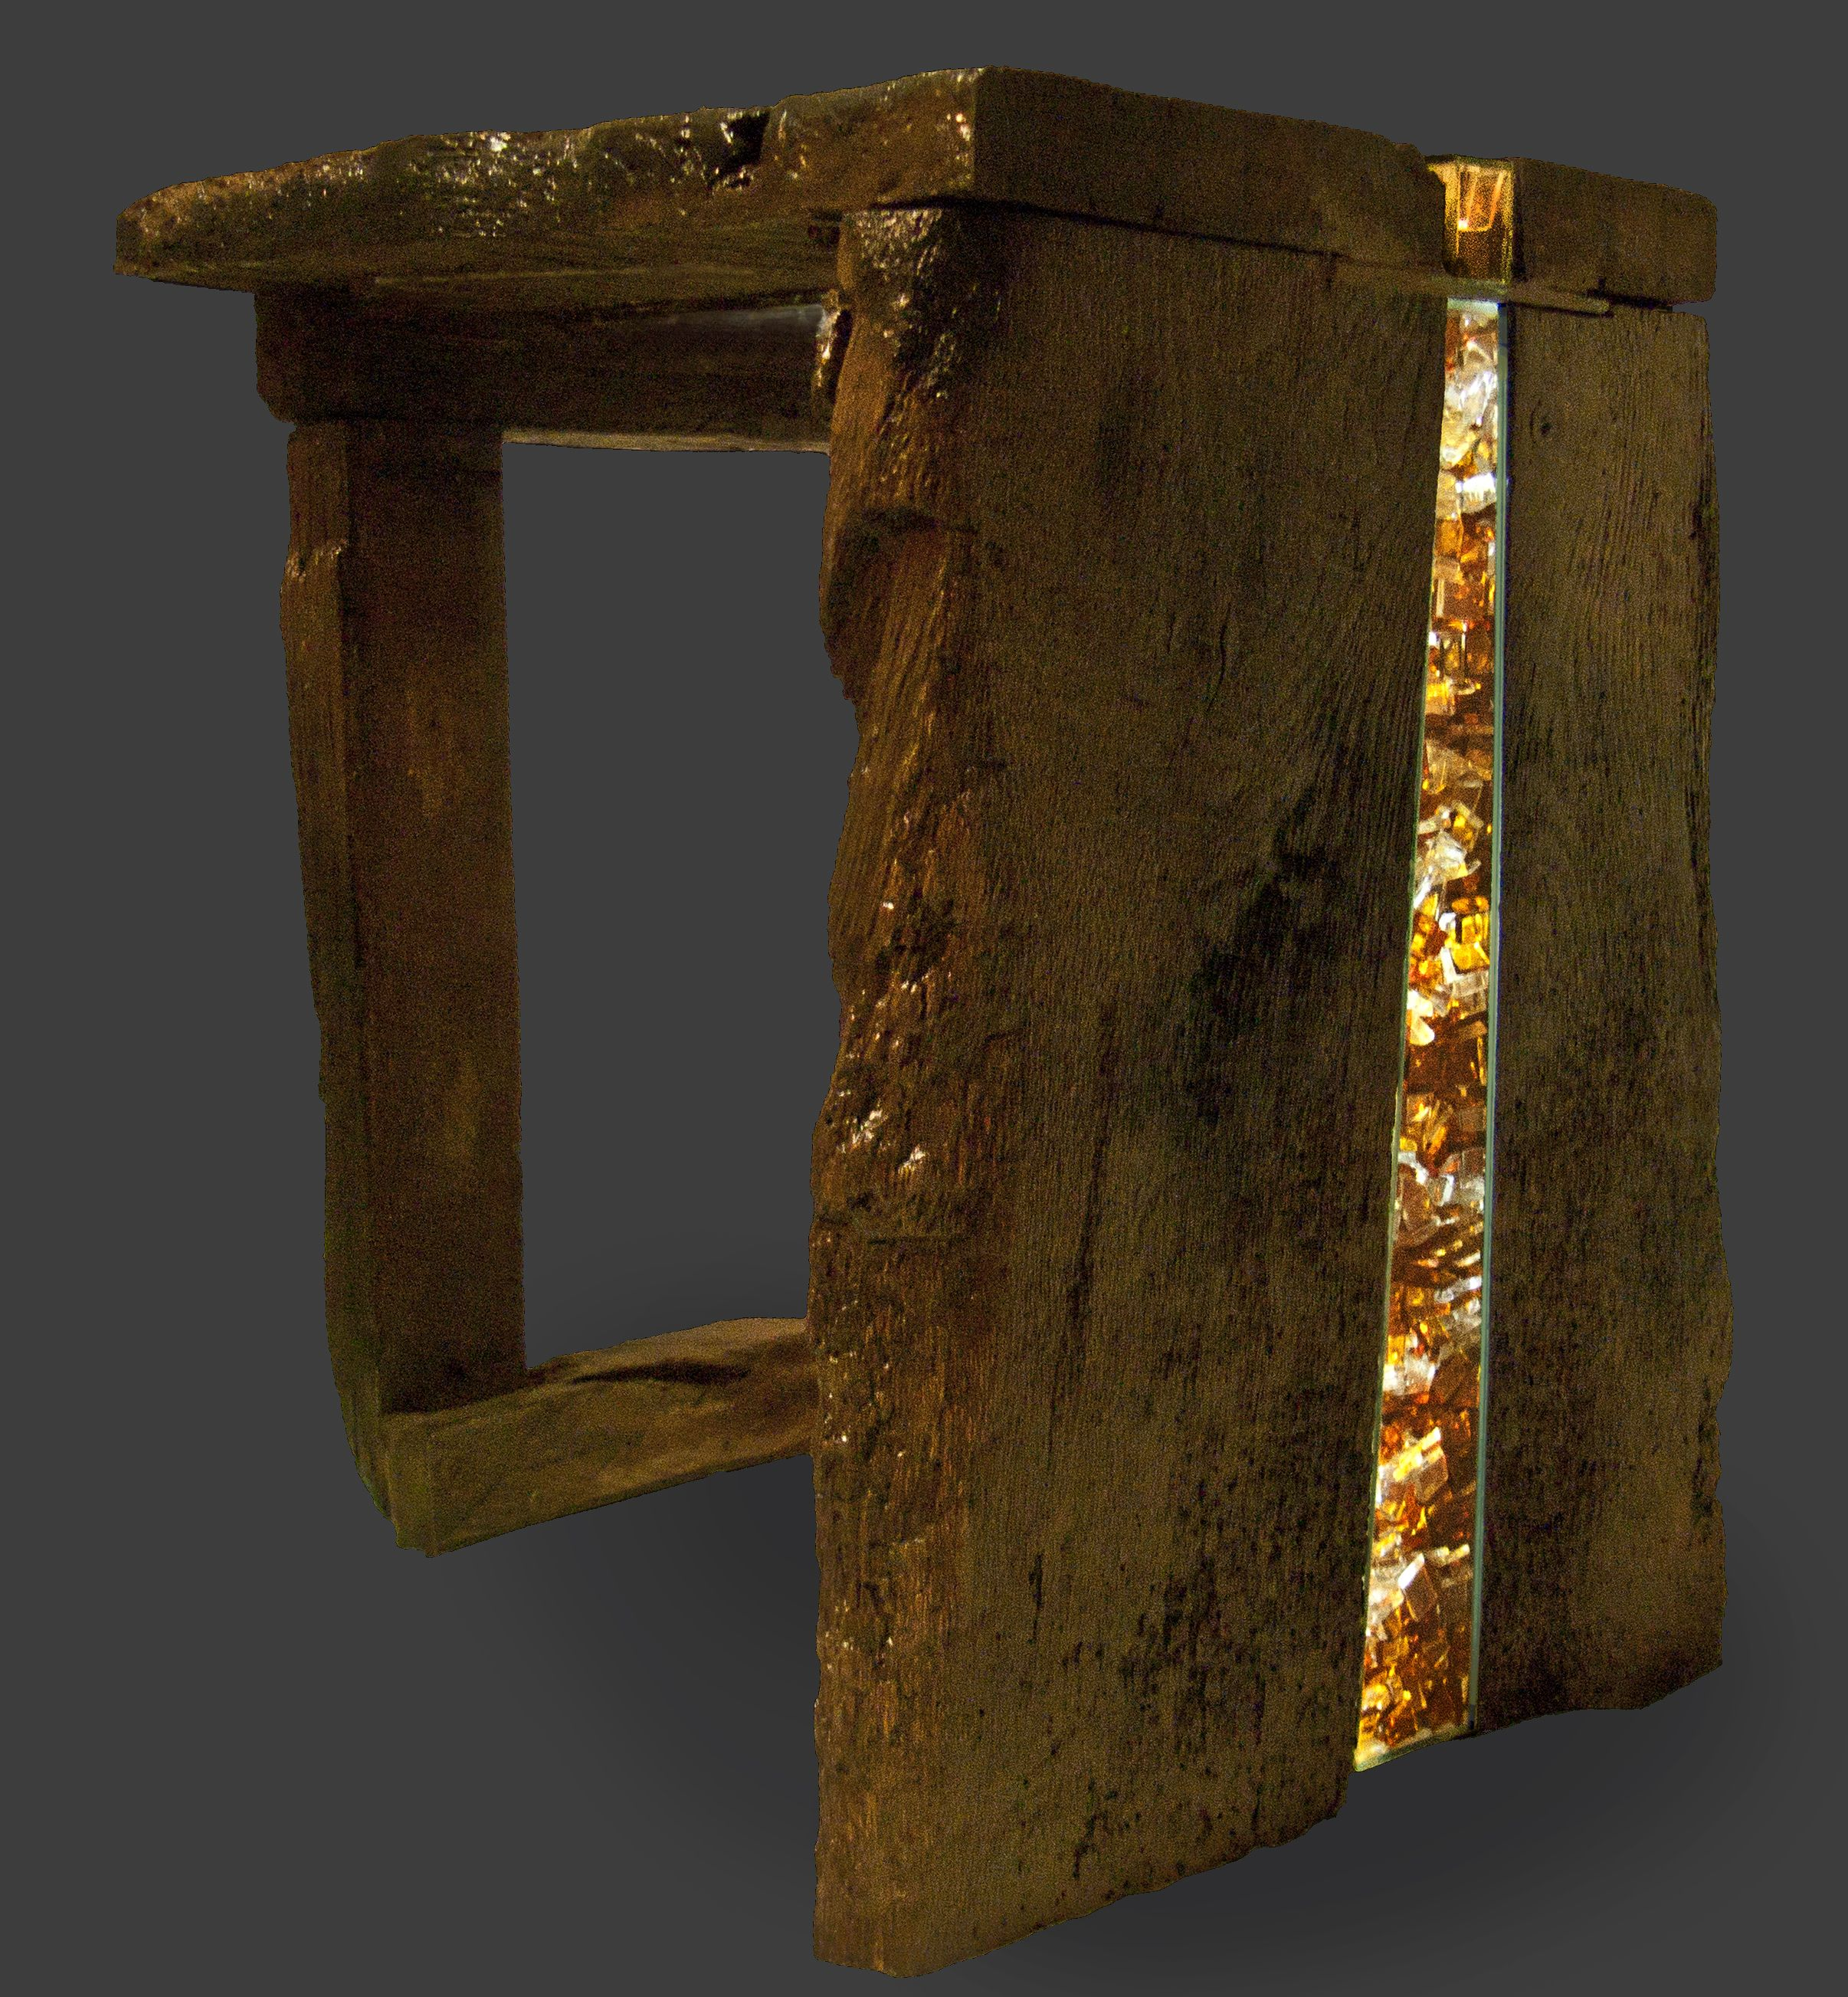 Ornamental Table of old oak wood with glass and led